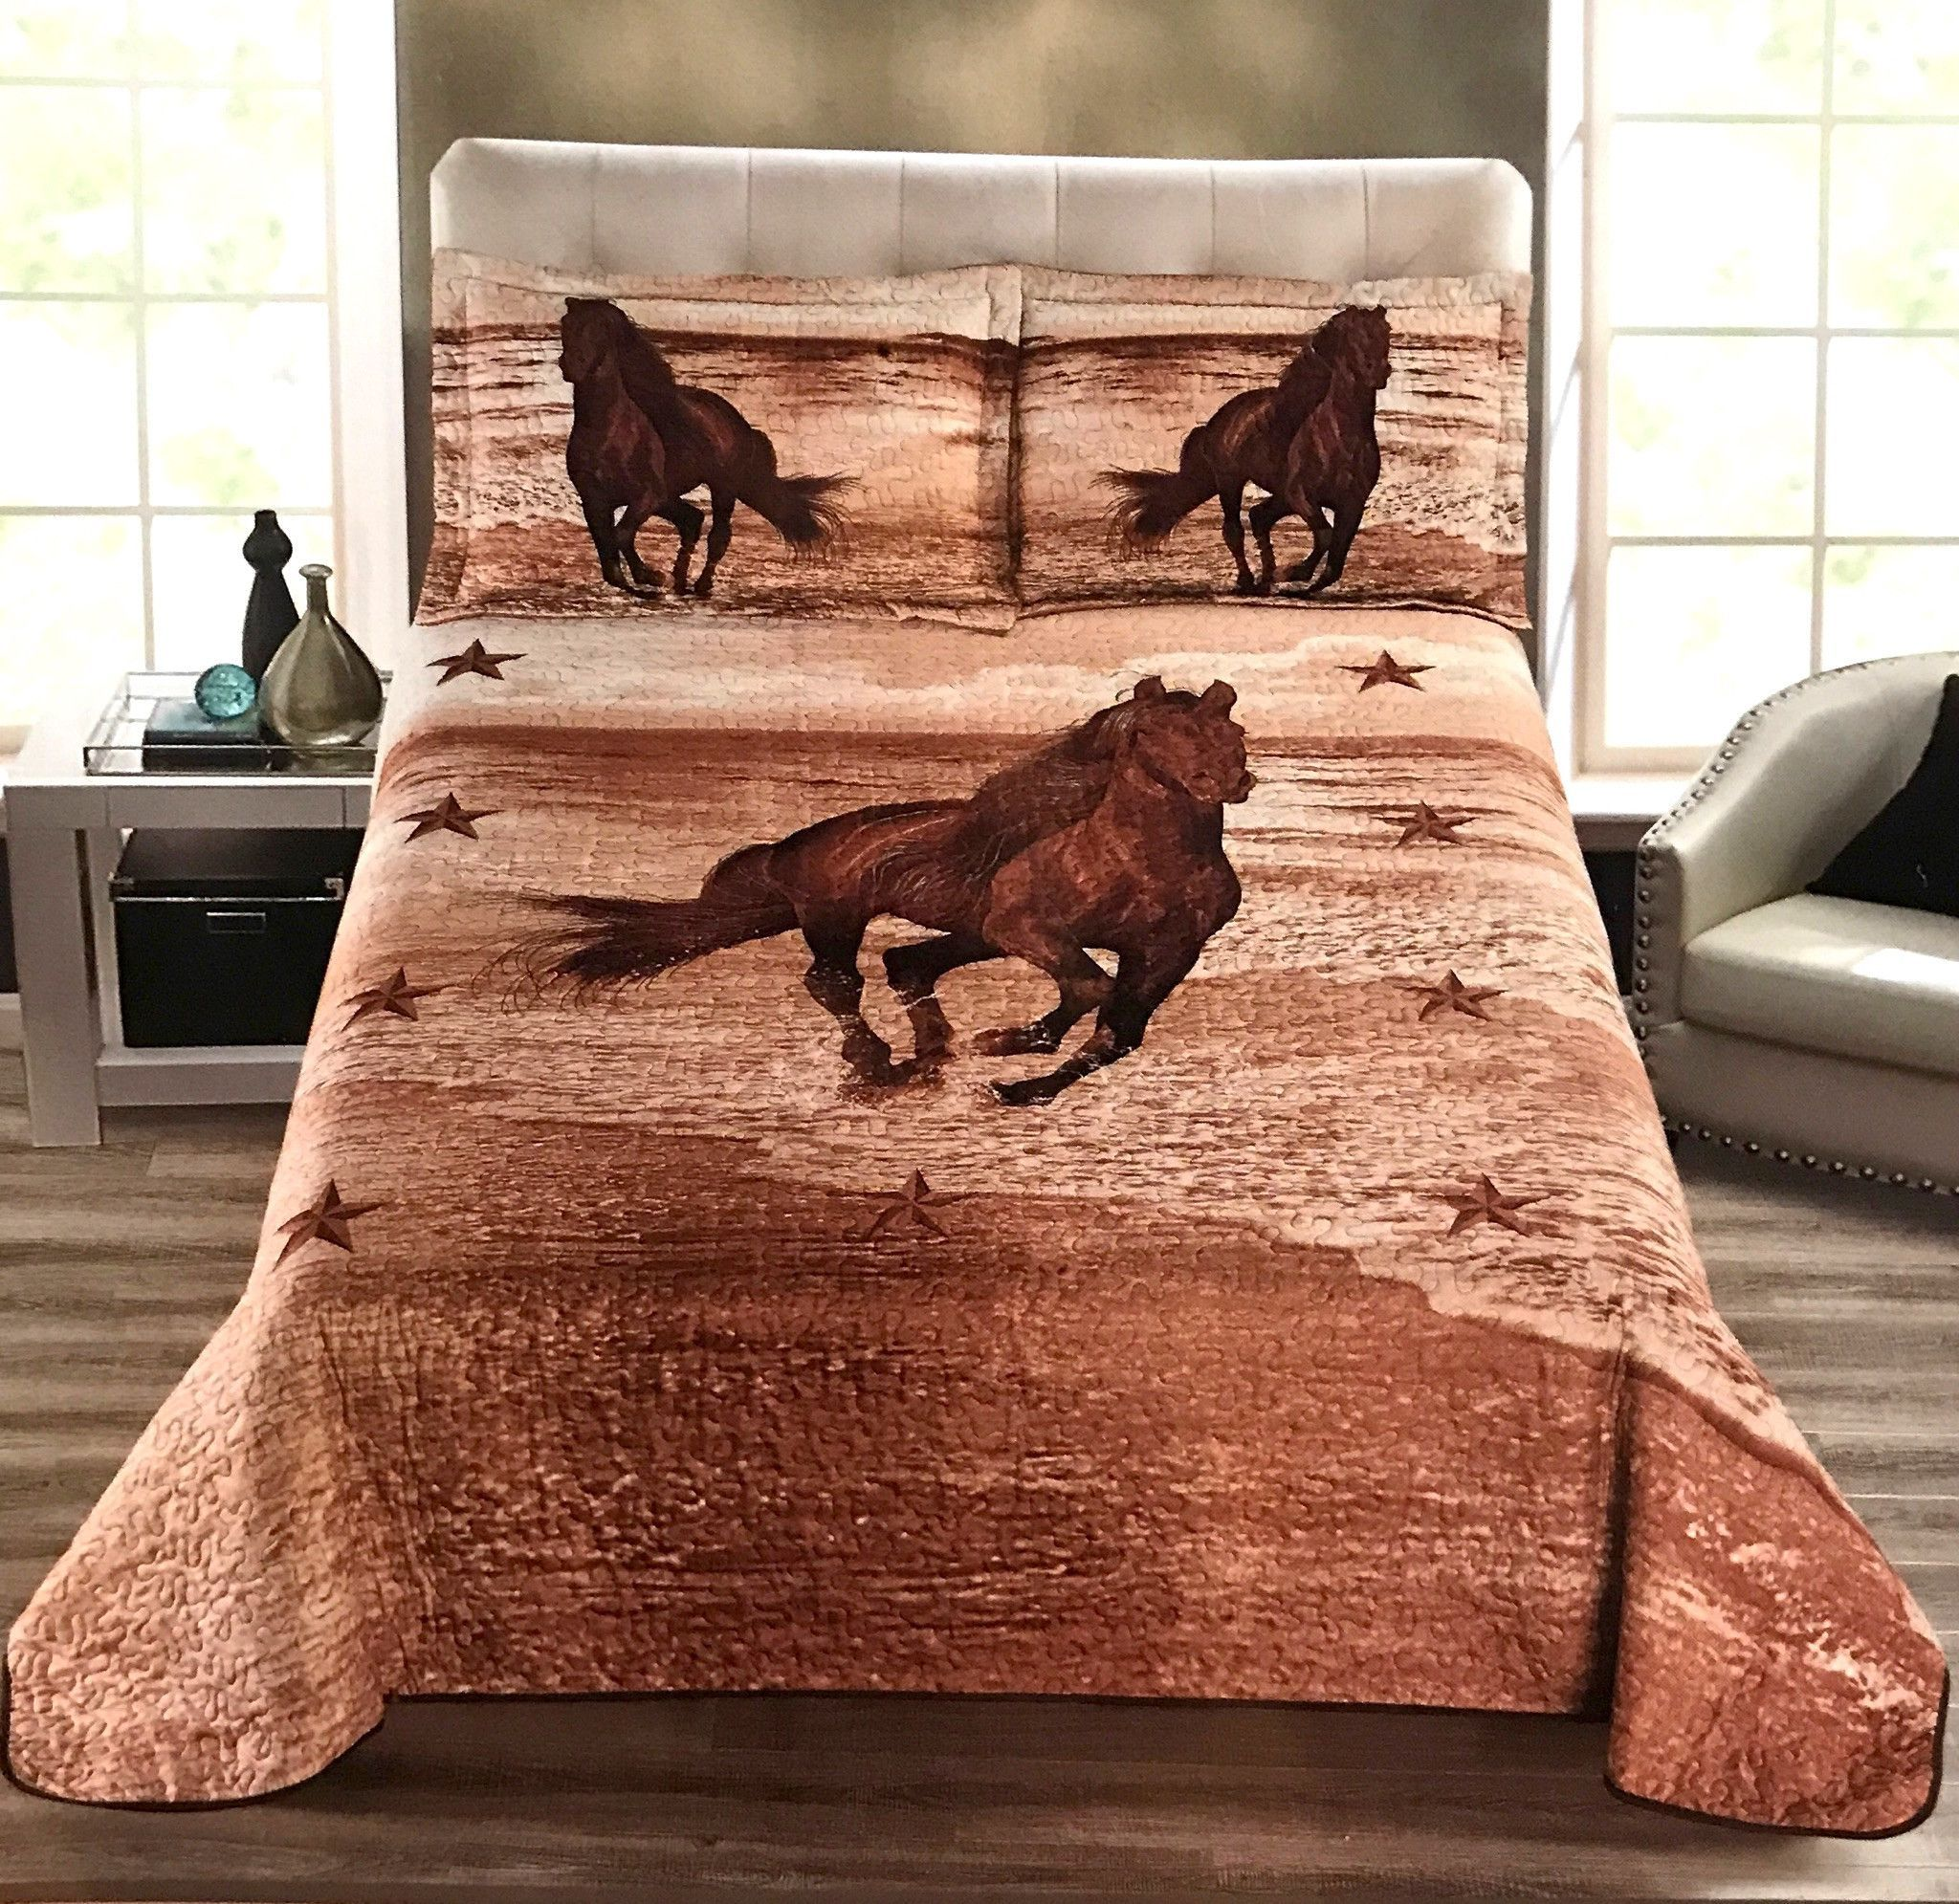 set pinterest and horse design for whiteeas picture comforters tags walls full ideas stupendous kids singular bedroom grey of tag comforter bedding images size all white queen